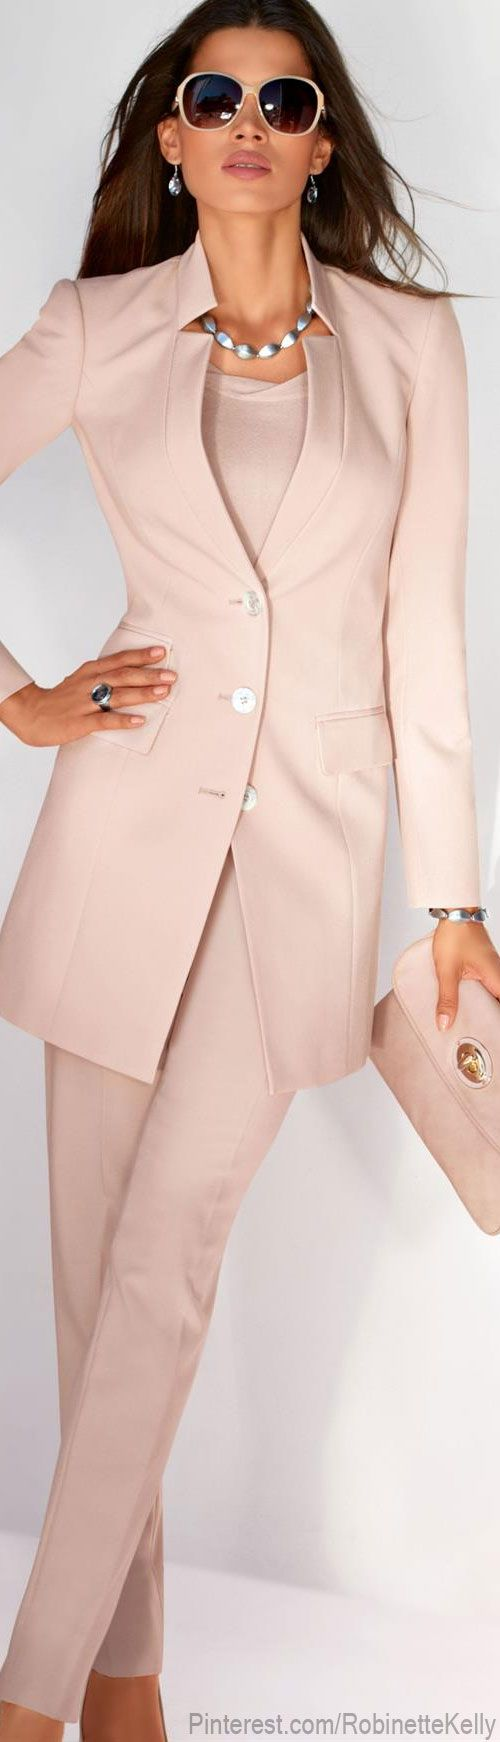 """Madeleine - It seems like Pants Suits with Longer Jackets are back """"in style"""" Great colour for Spring..."""